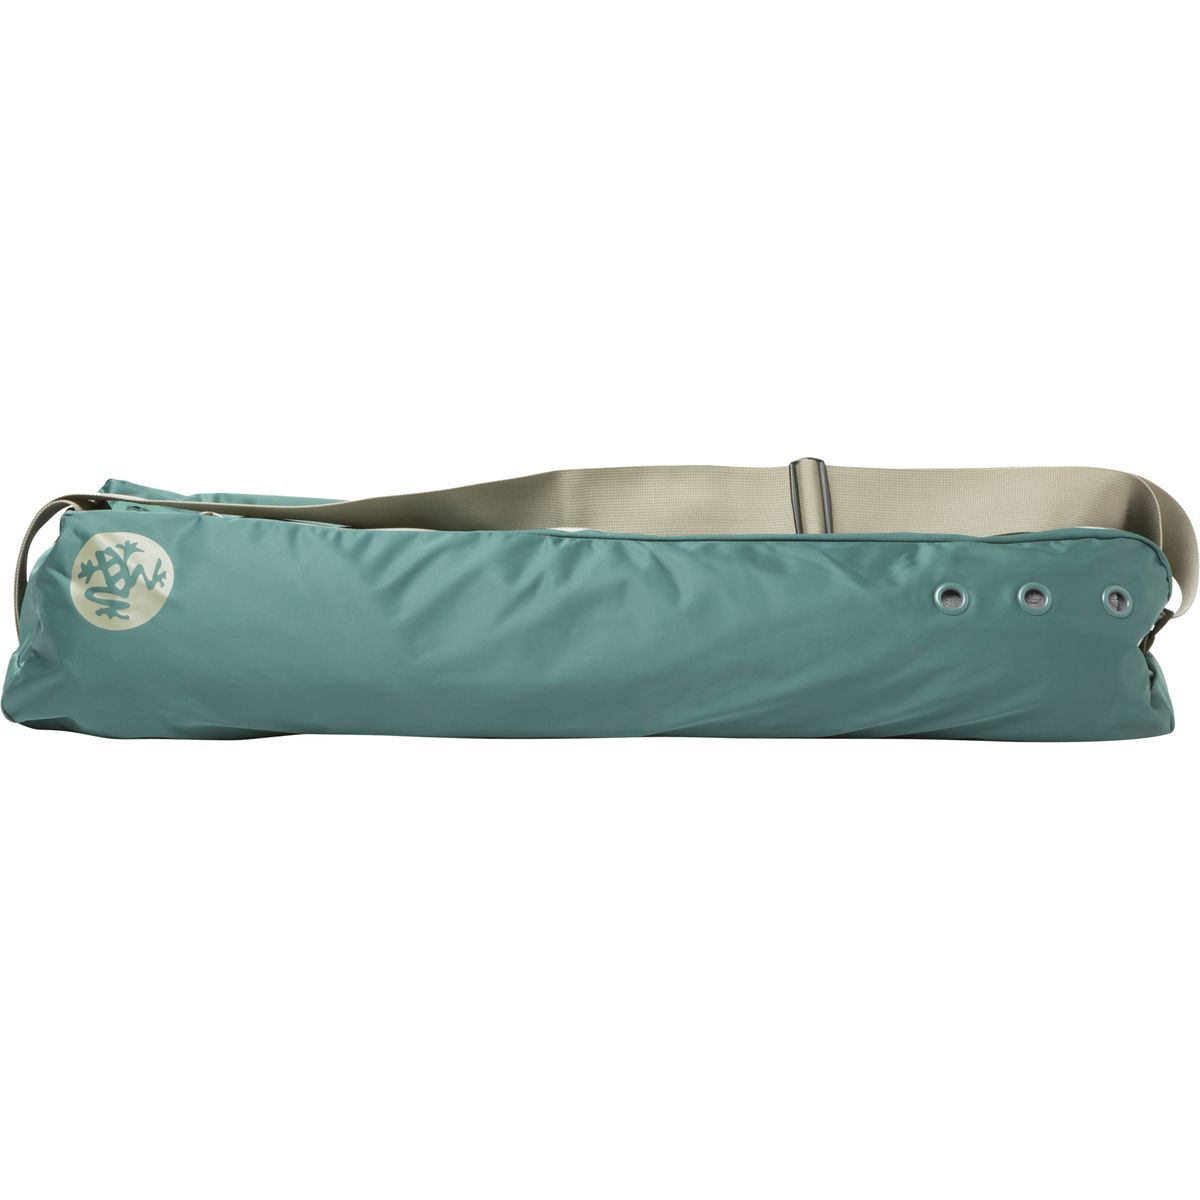 18FC Convenience Black Portable Yoga Mat Bag Nylon Carrier Mesh Center Strap Email to friends Share on Facebook - opens in a new window or tab Share on Twitter - opens in a new window or tab Share on Pinterest - opens in a new window or tab.